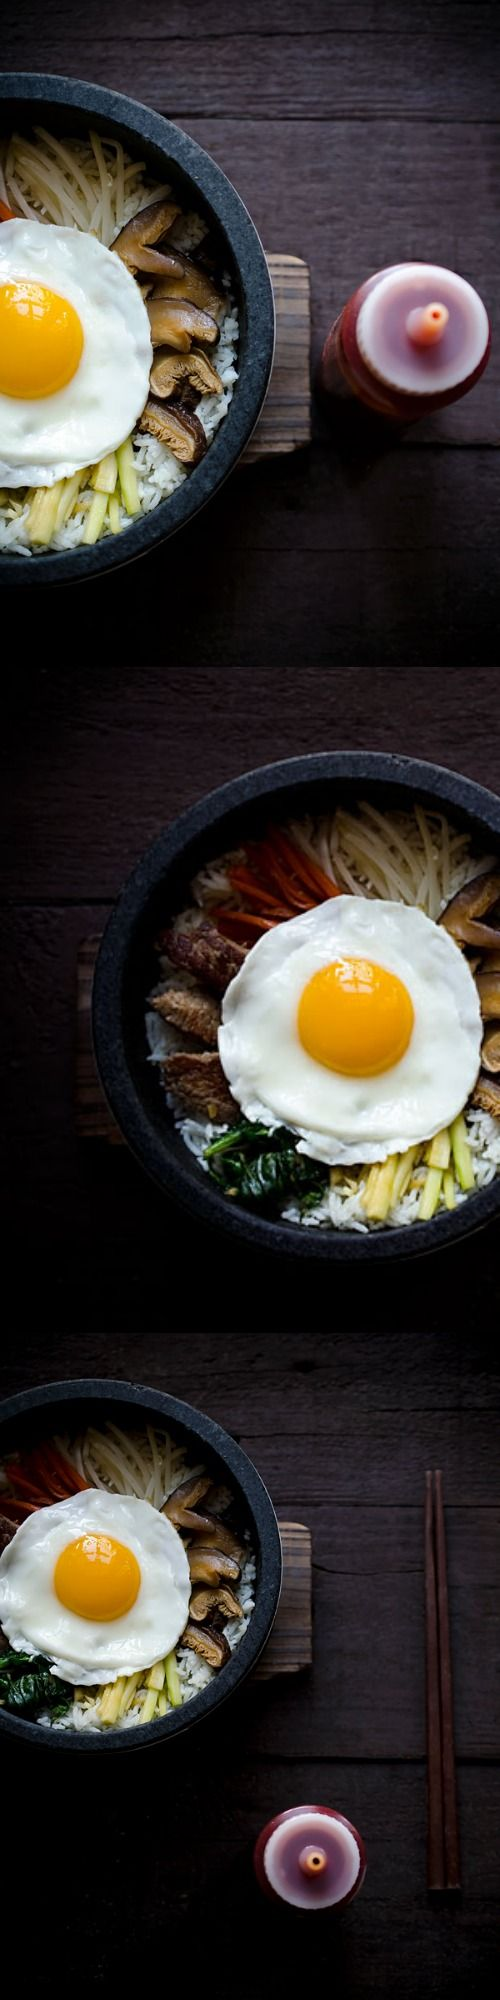 Looking for the perfect comfort food recipe? Look no further than this Korean classic, Dolsot Bibimbap. It's a mixture of rice, vegetables and beef with a fried egg on top.